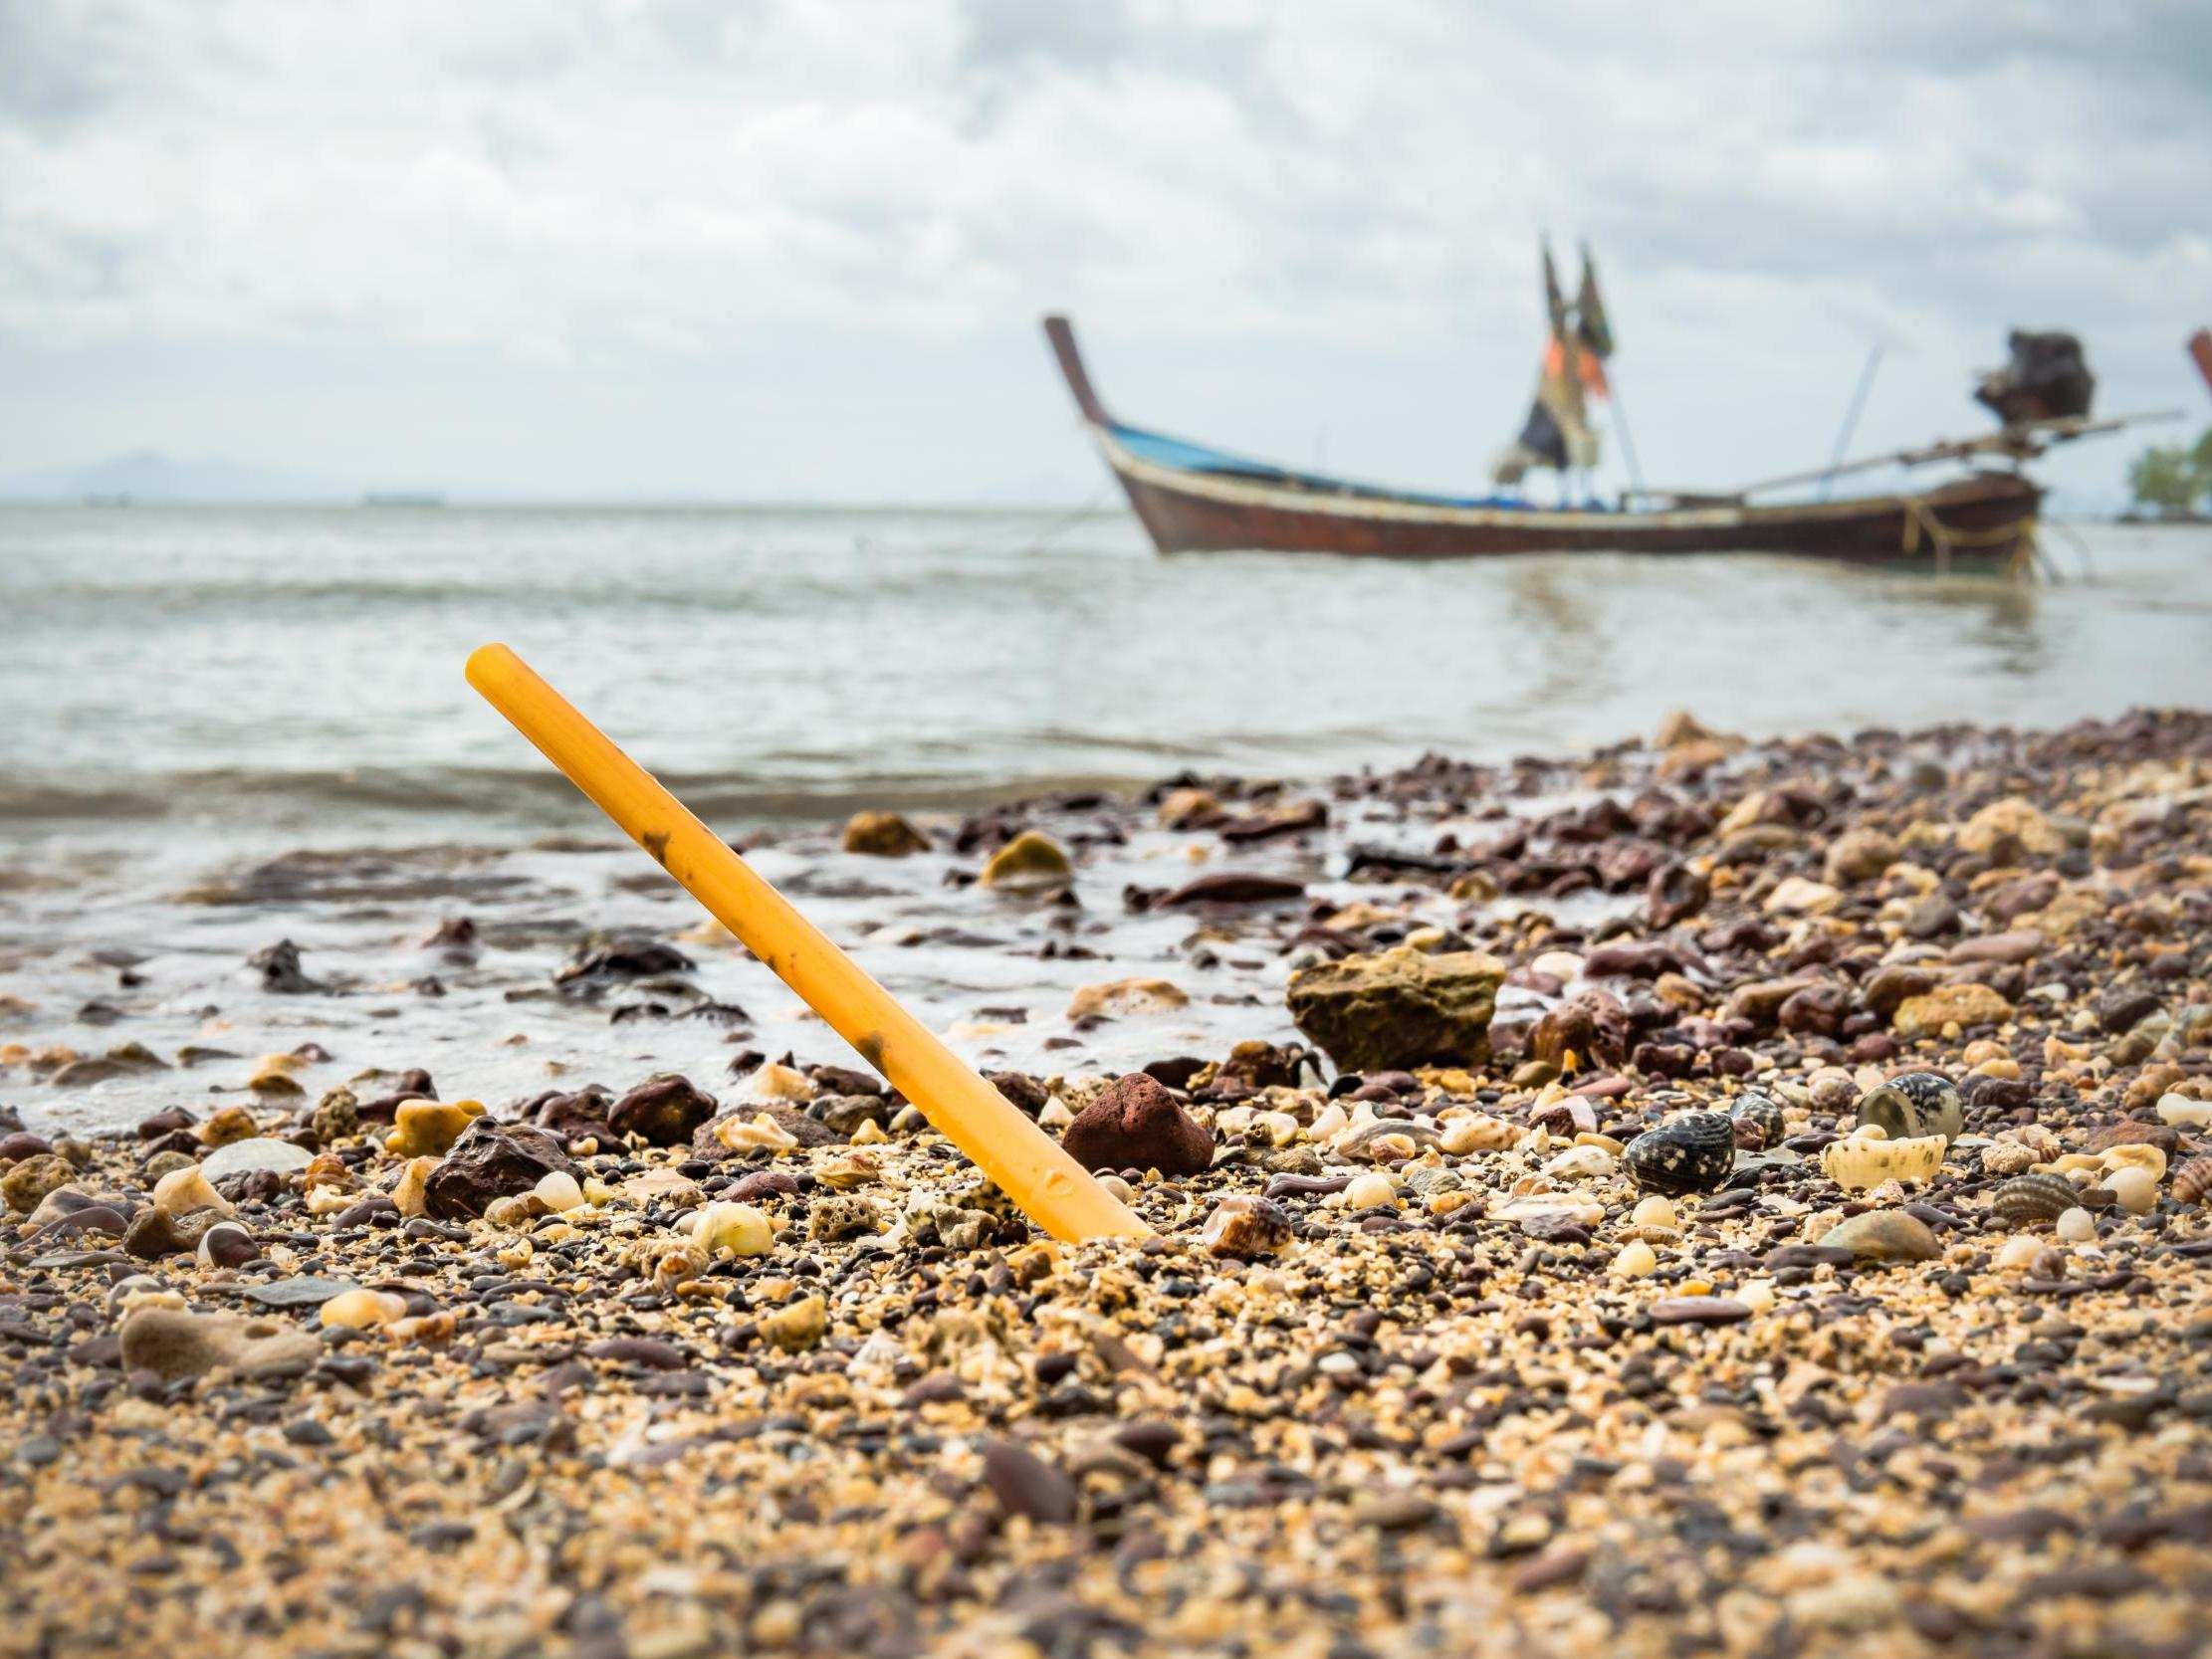 Plastic straws and cotton buds to be banned next year in effort to tackle plastic pollution